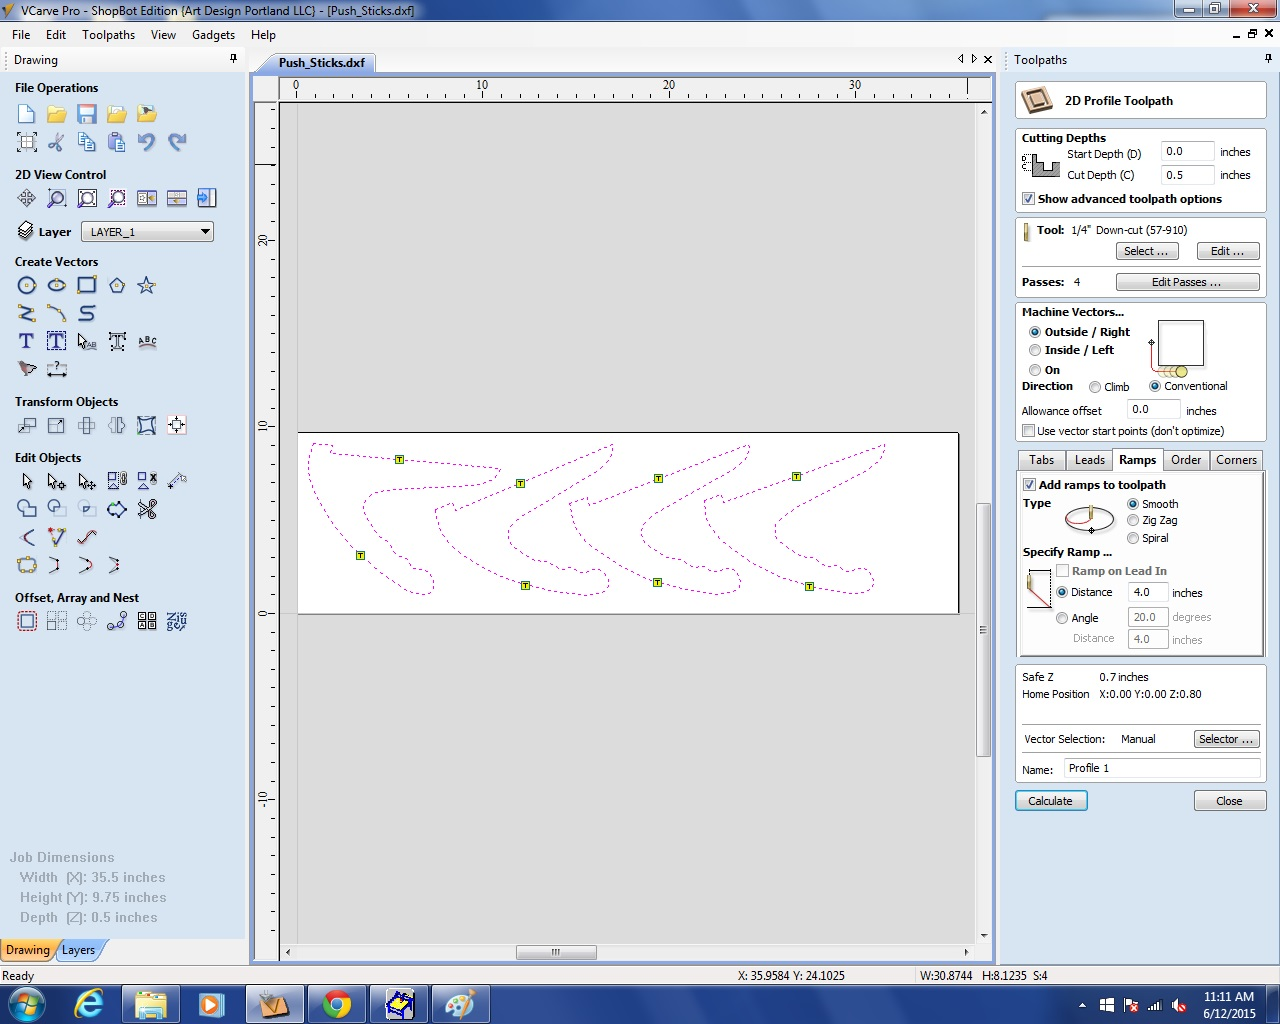 Picture of Toolpaths